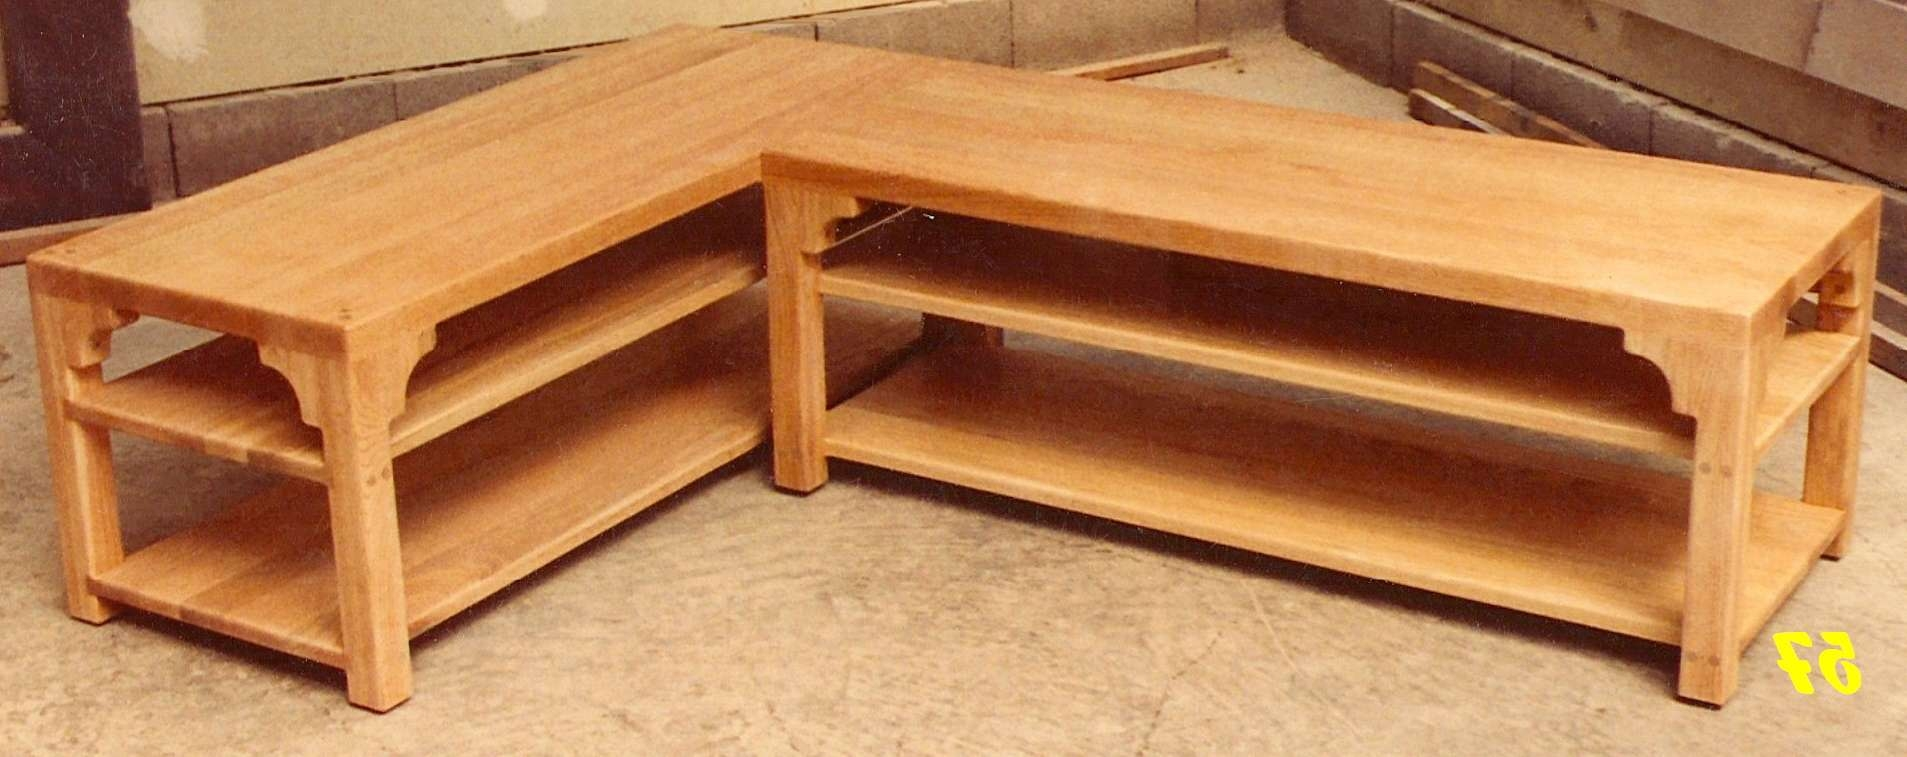 Most Recently Released Contemporary Oak Coffee Table Inside Coffee Tables Ideas: Top Oak Coffee Table And End Tables Real Wood (View 12 of 20)